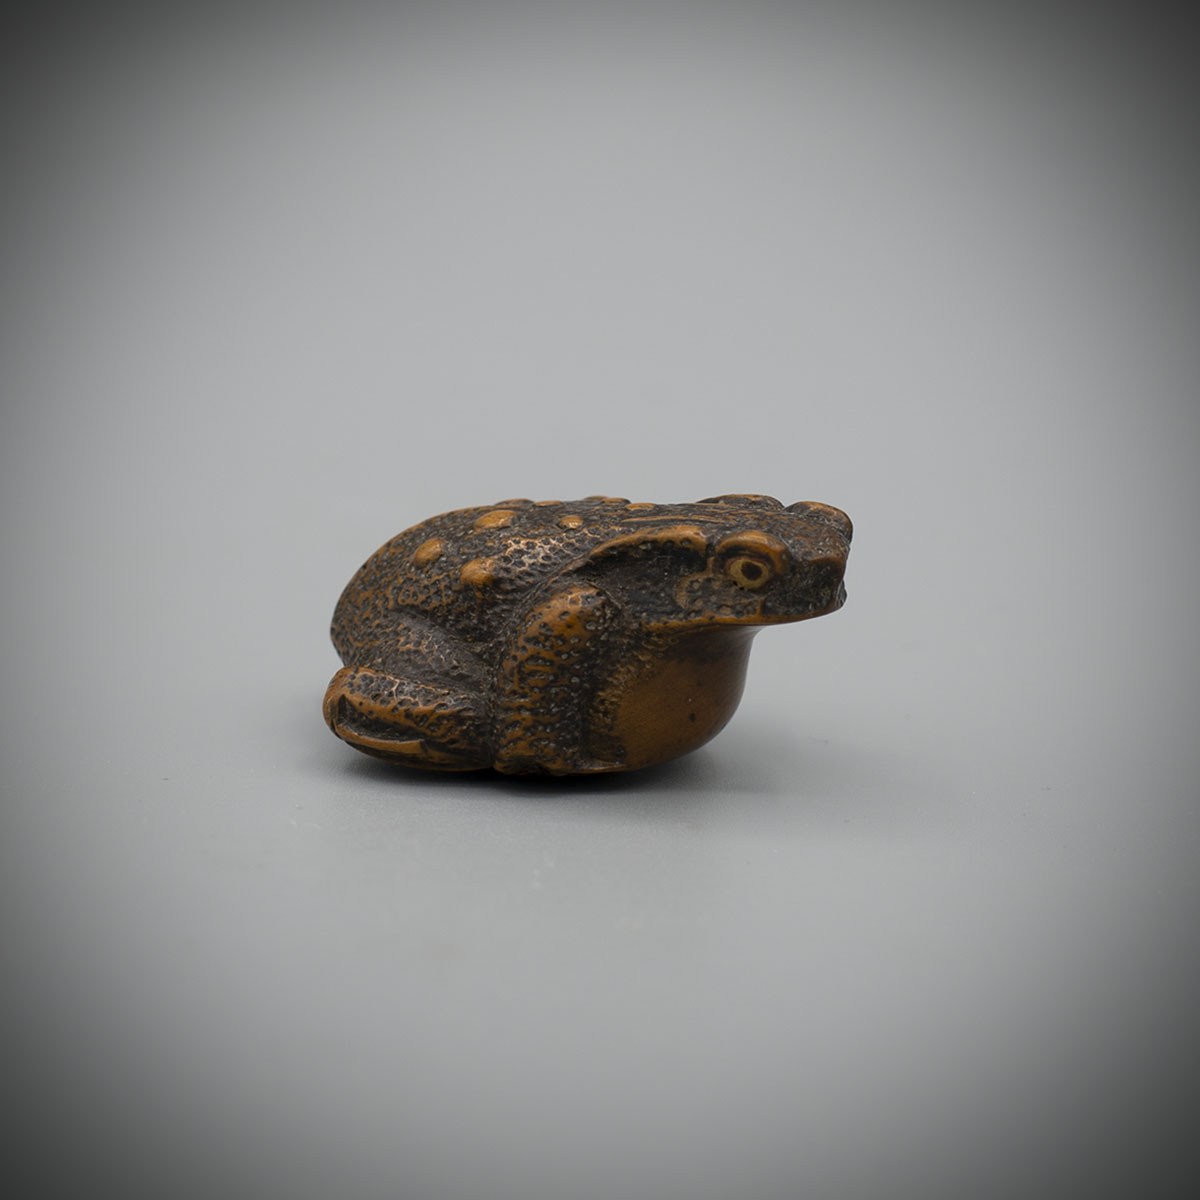 Echizen School Wood Netsuke of a Toad, MR3371_v1